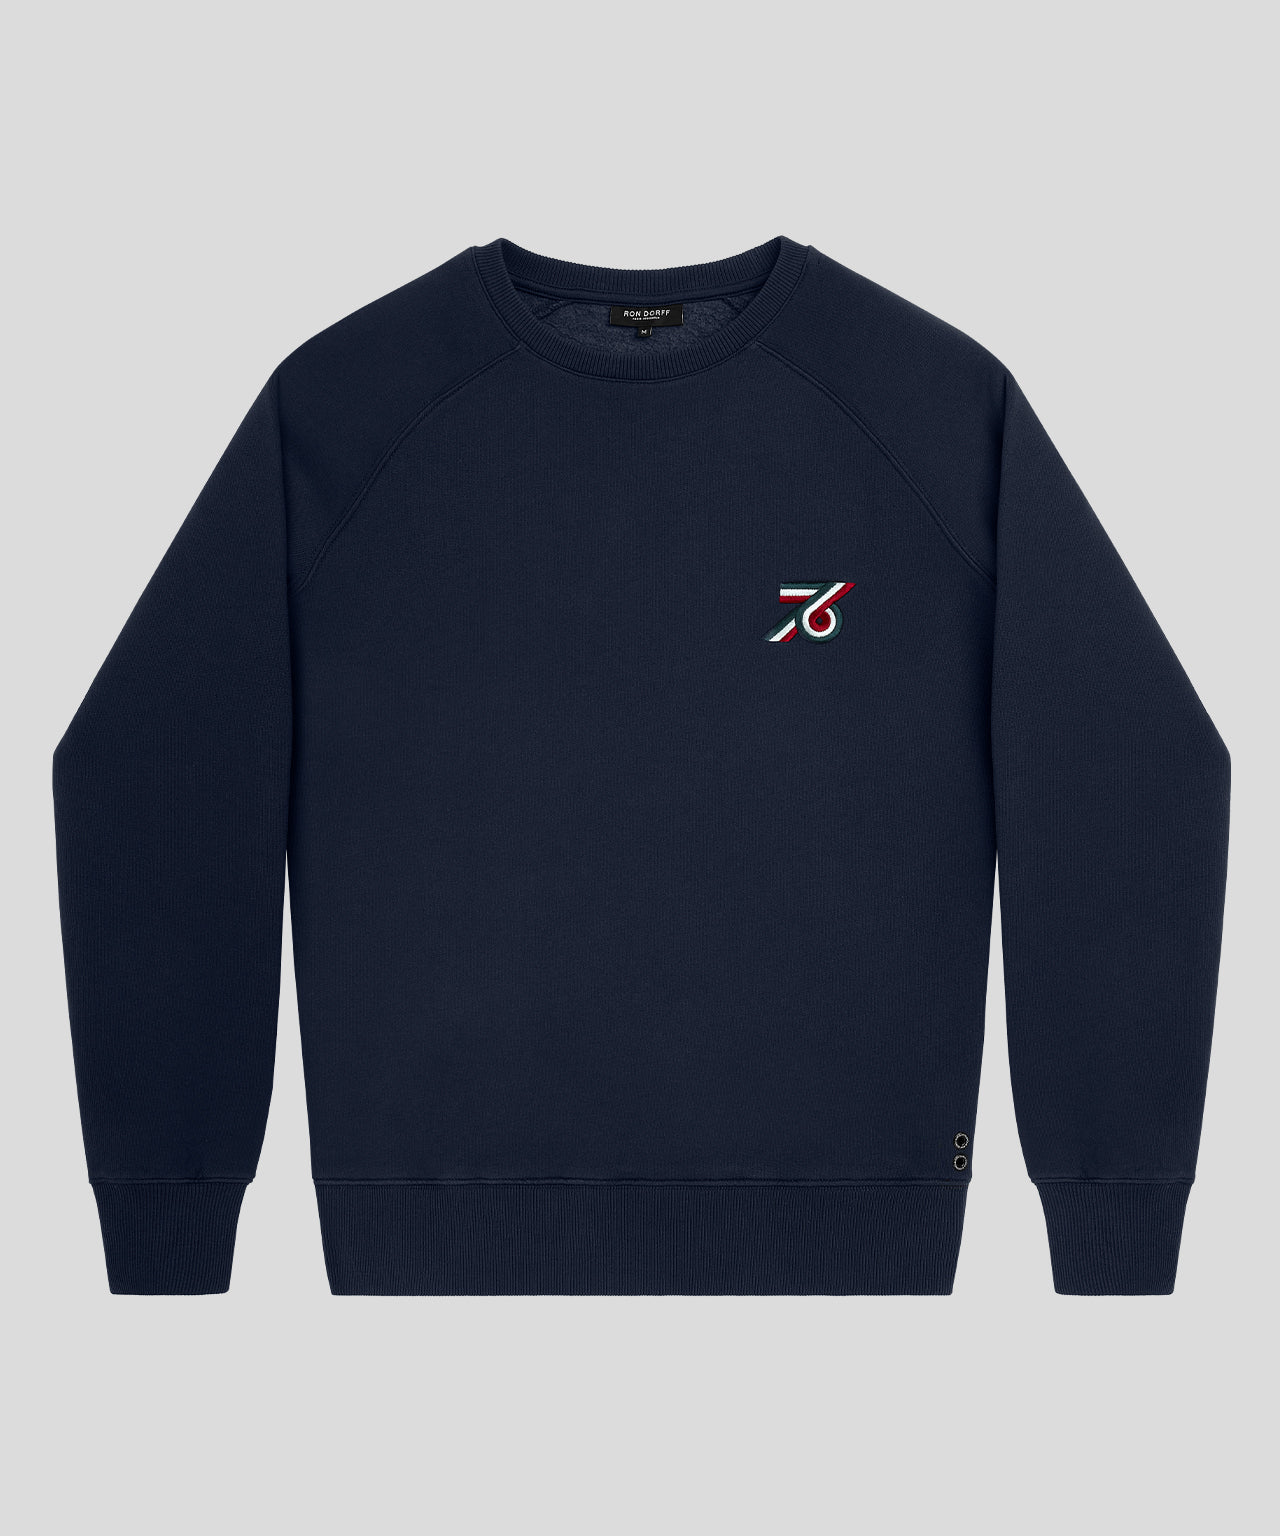 Sweatshirt 76 - navy